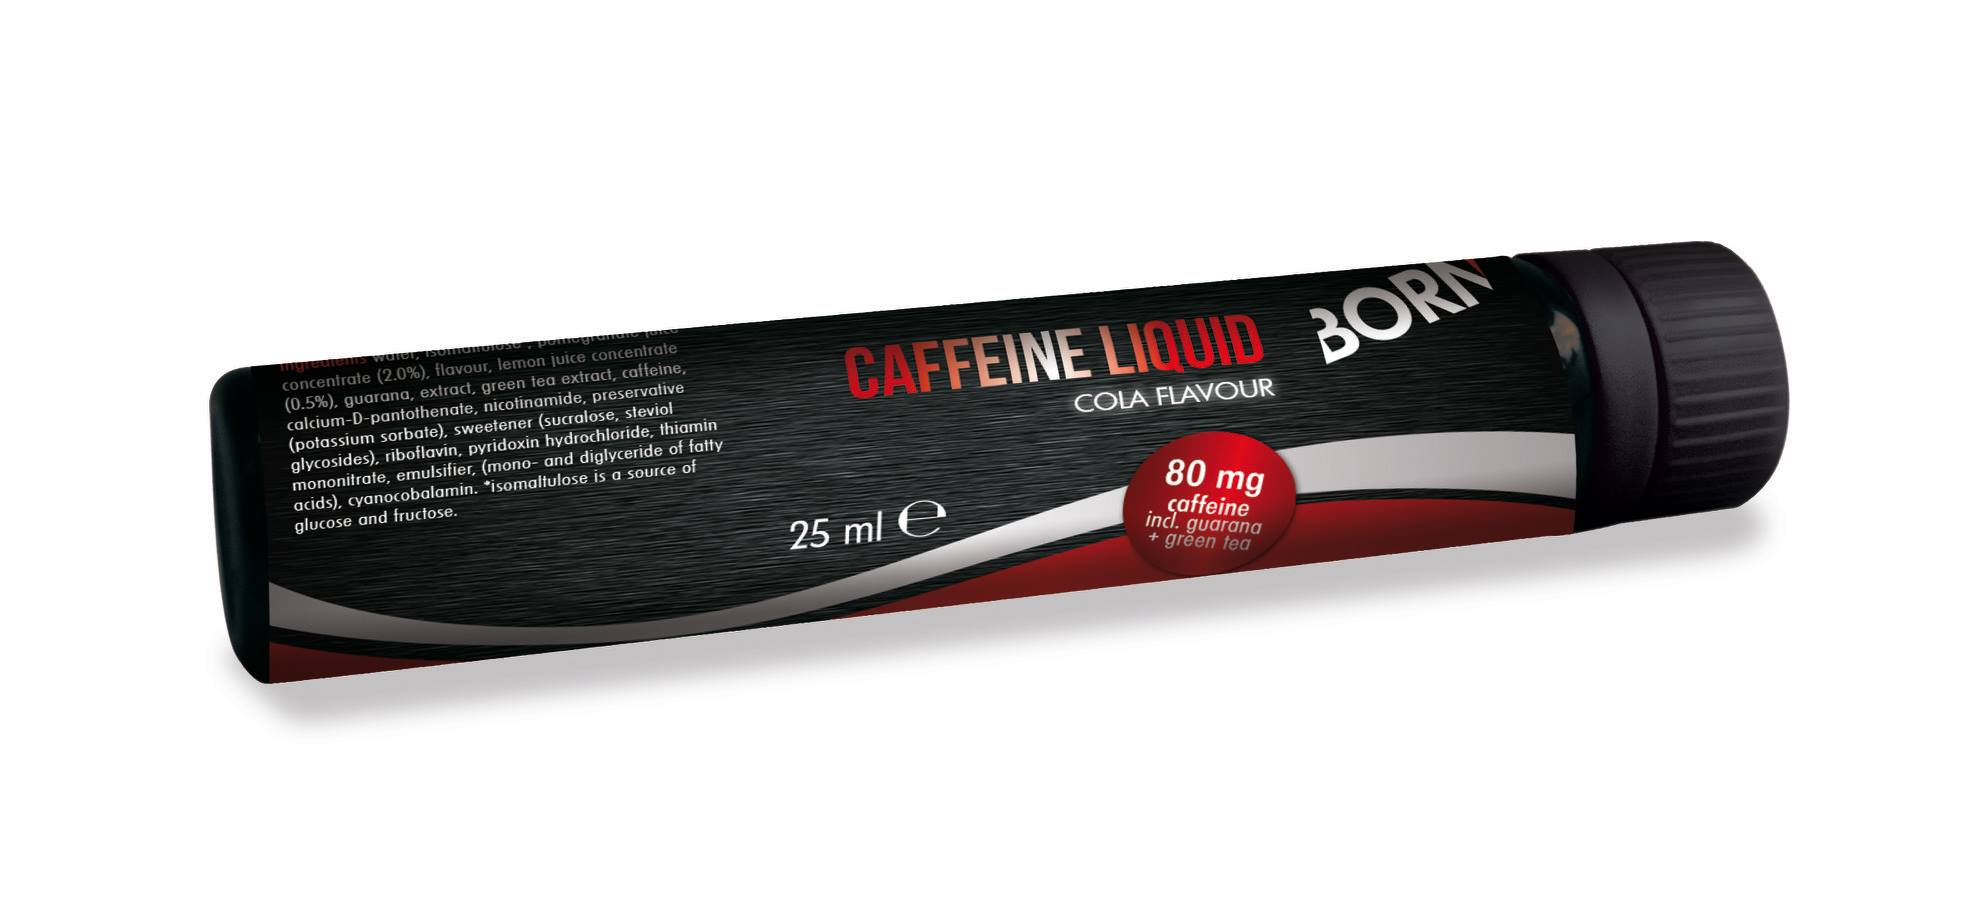 Caffeine Liquid - cola 25ml